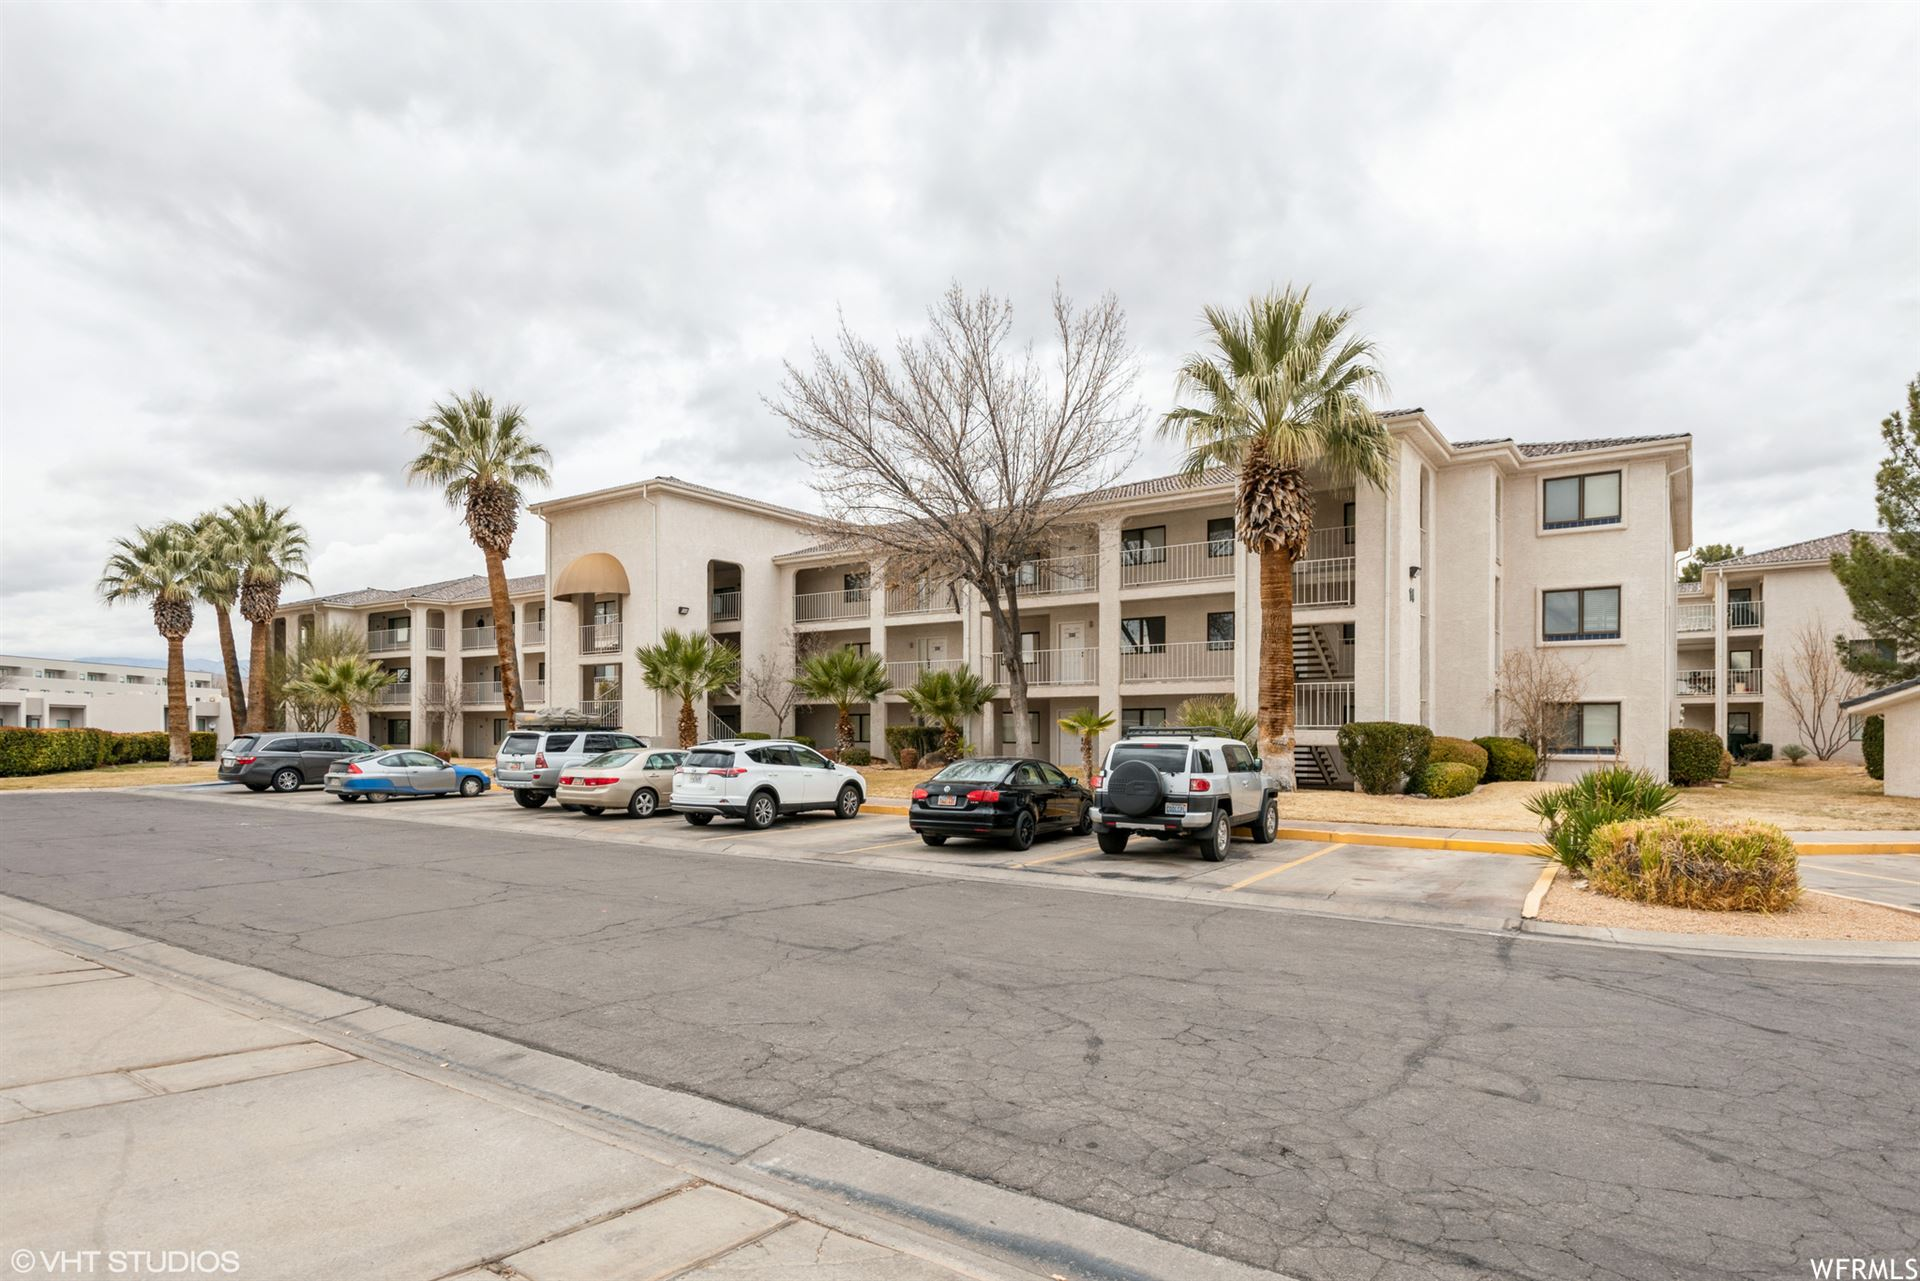 Photo of 1845 W CANYON VIEW DR #1418, Saint George, UT 84770 (MLS # 1721629)